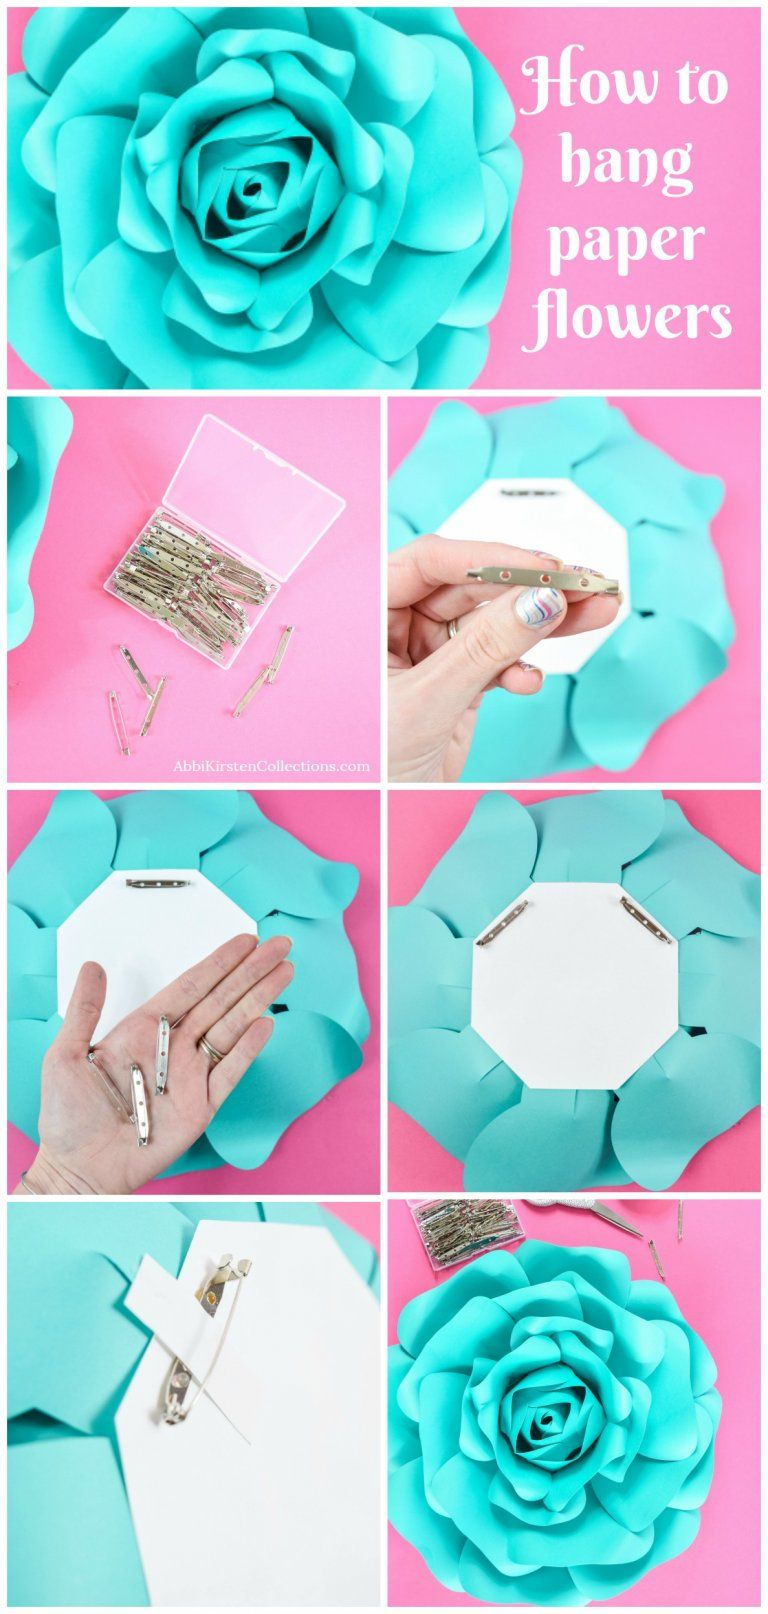 How To Hang Paper Flowers 8 Easy Ways To Hang Paper Flowers